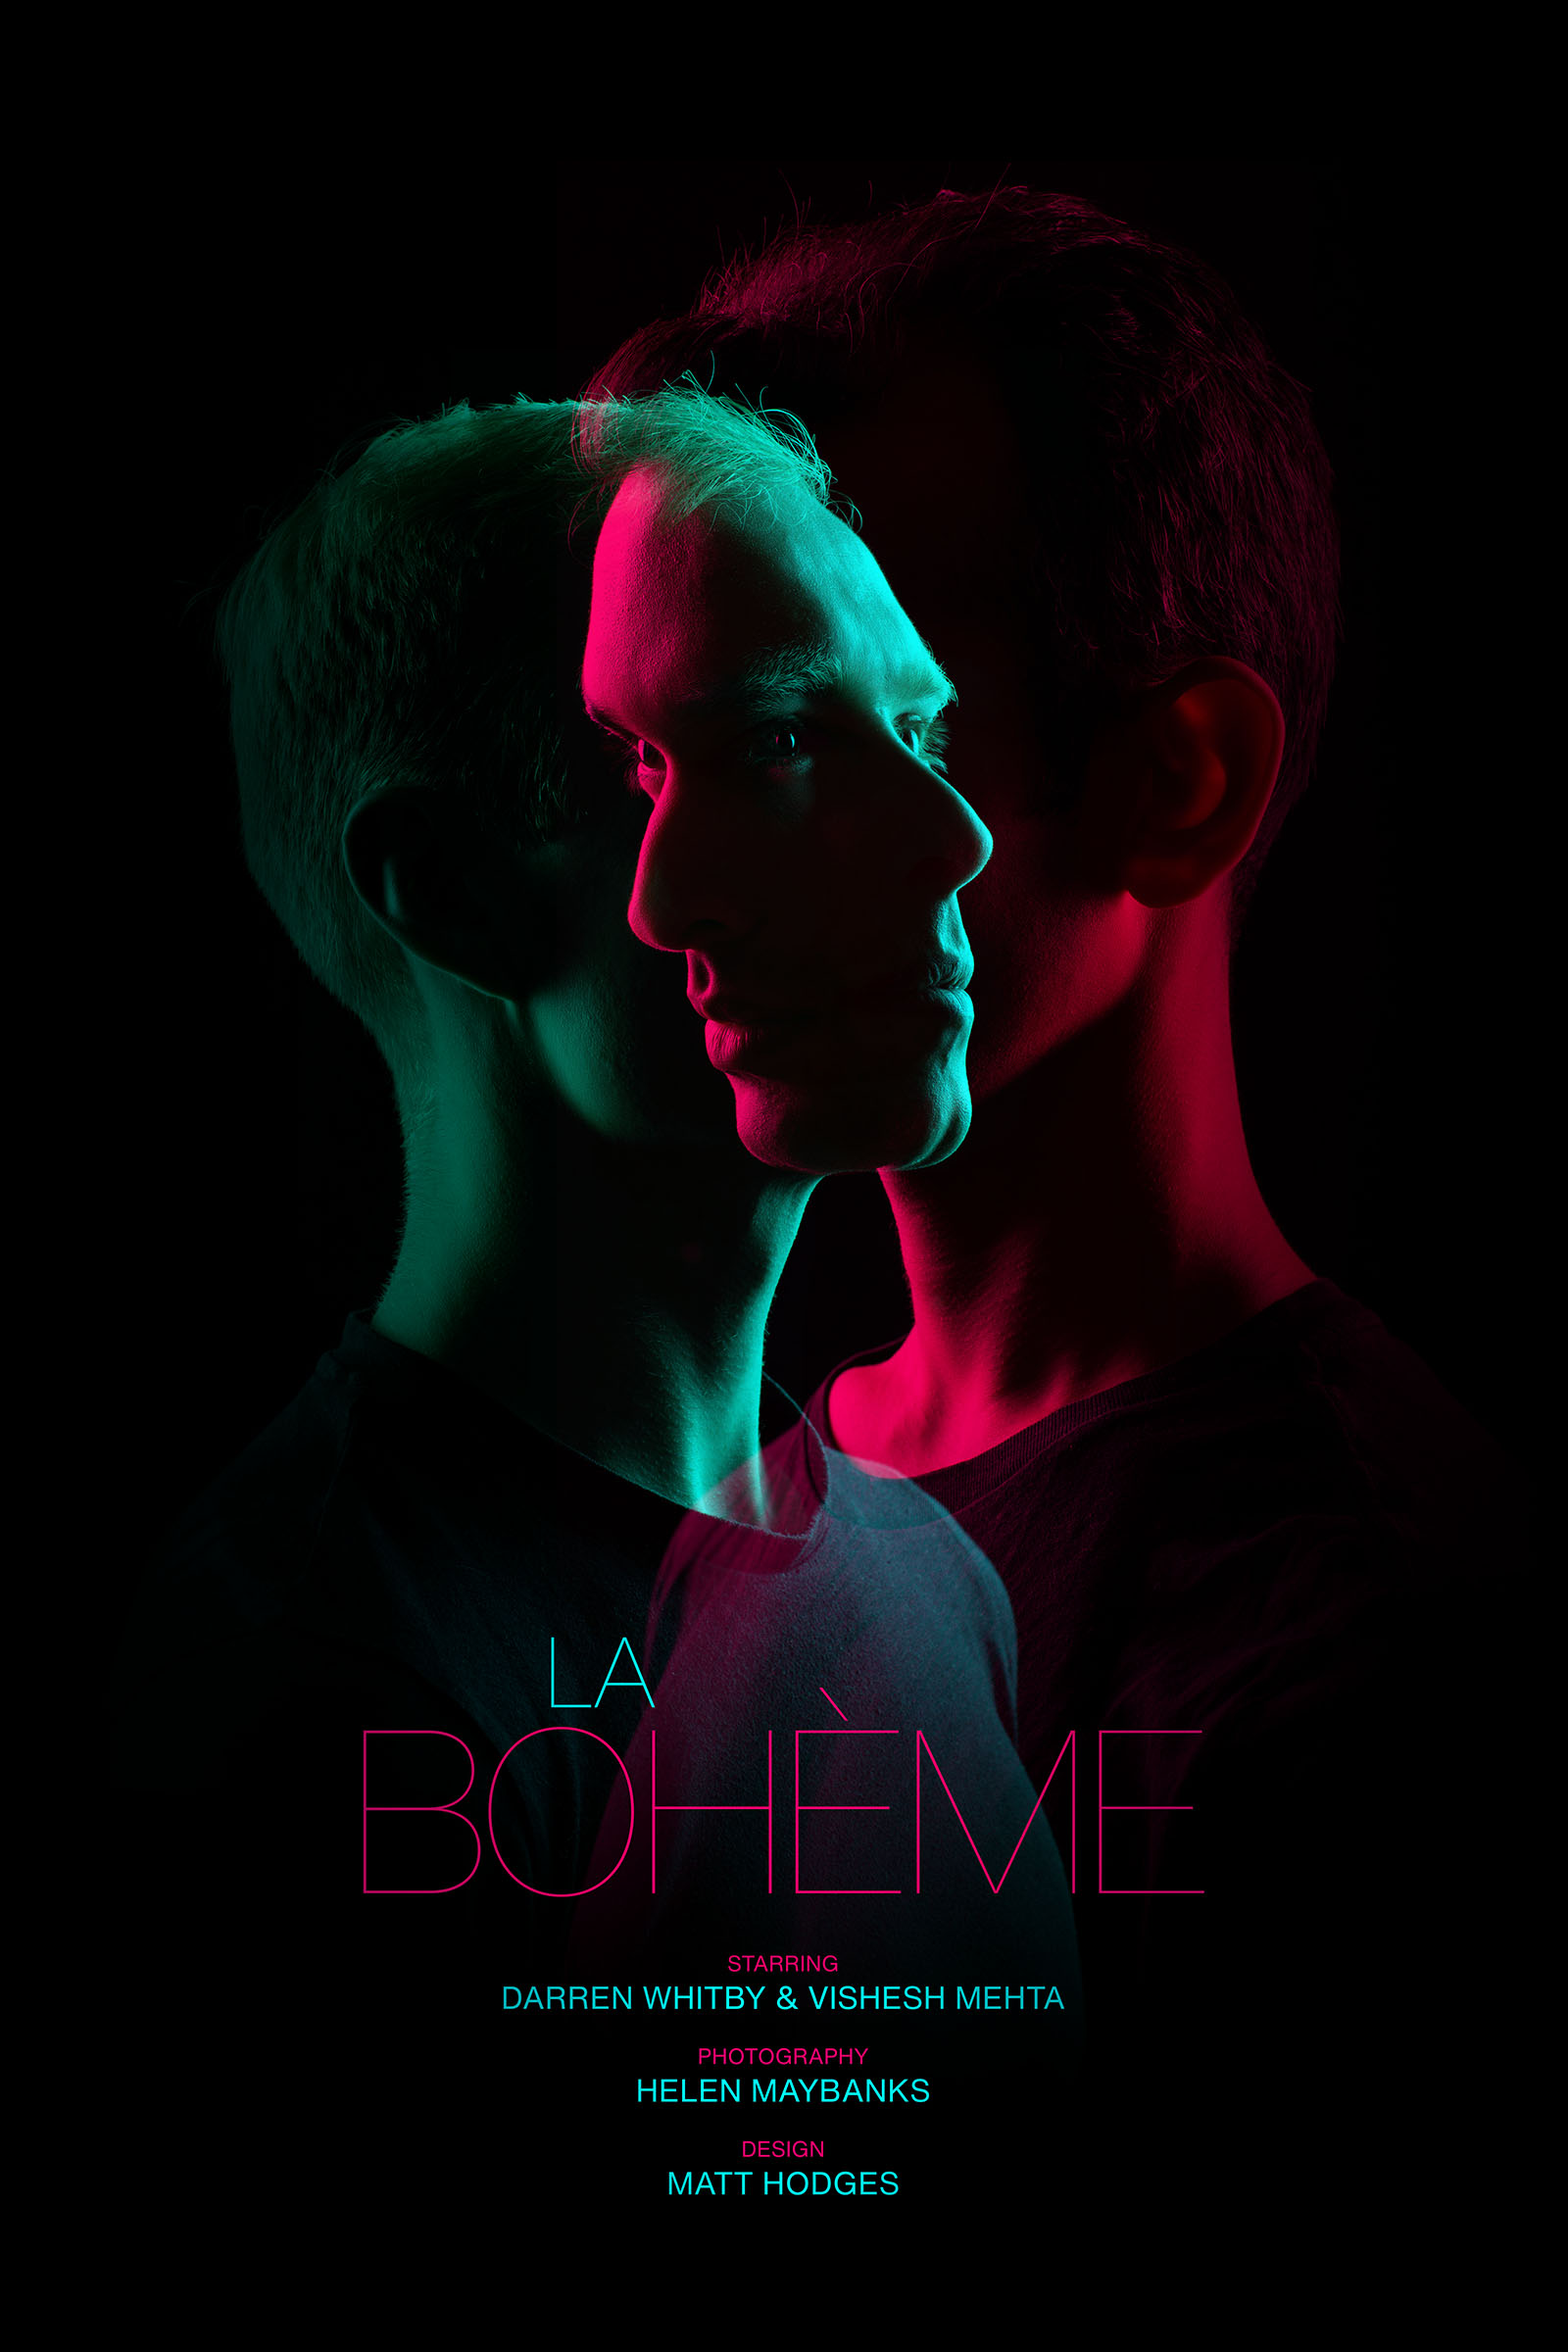 A poster for La bohème featuring Vishesh Mehta and Darren Whitby